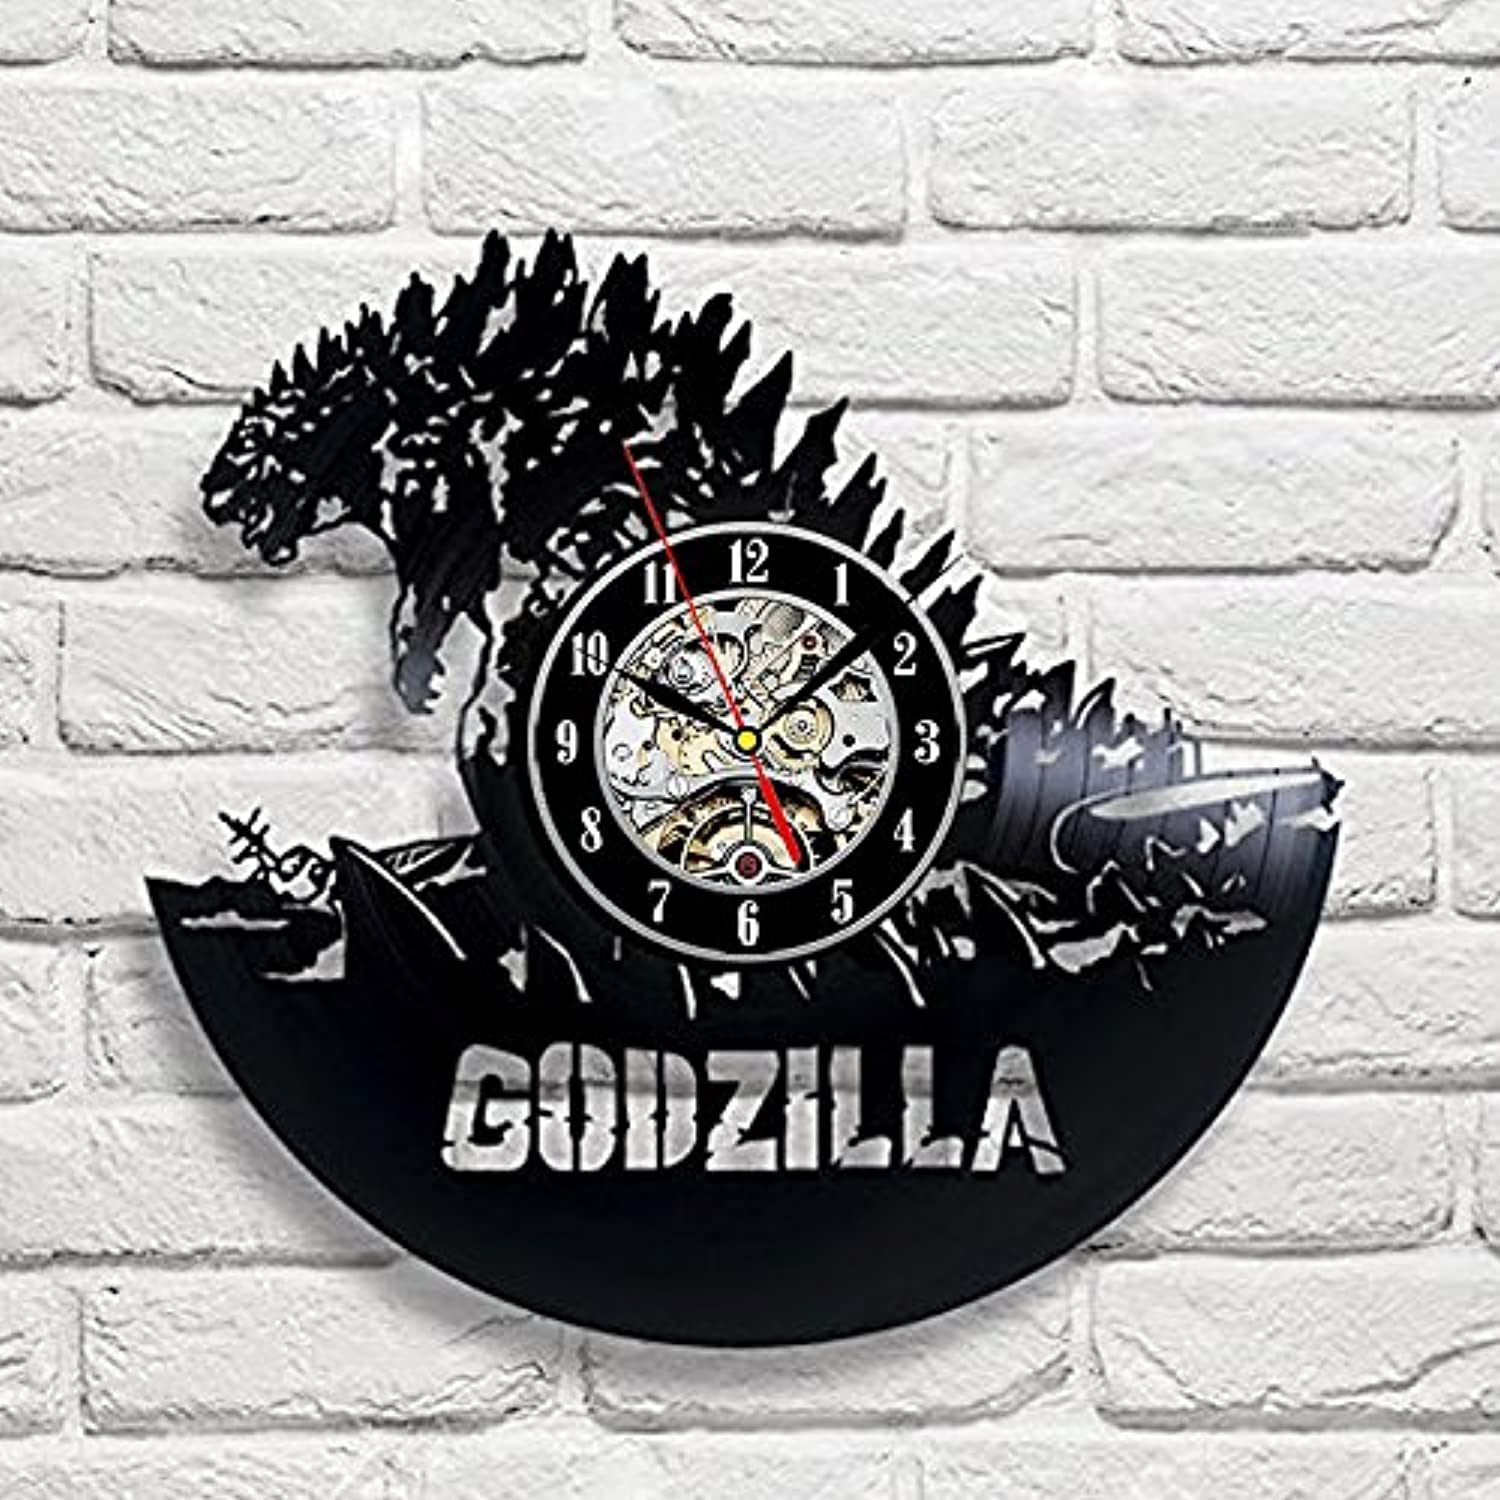 Godzilla Art Vinyl Wall Clock Gift Room Modern Home Record Vintage Decoration - Win a prize for feedback